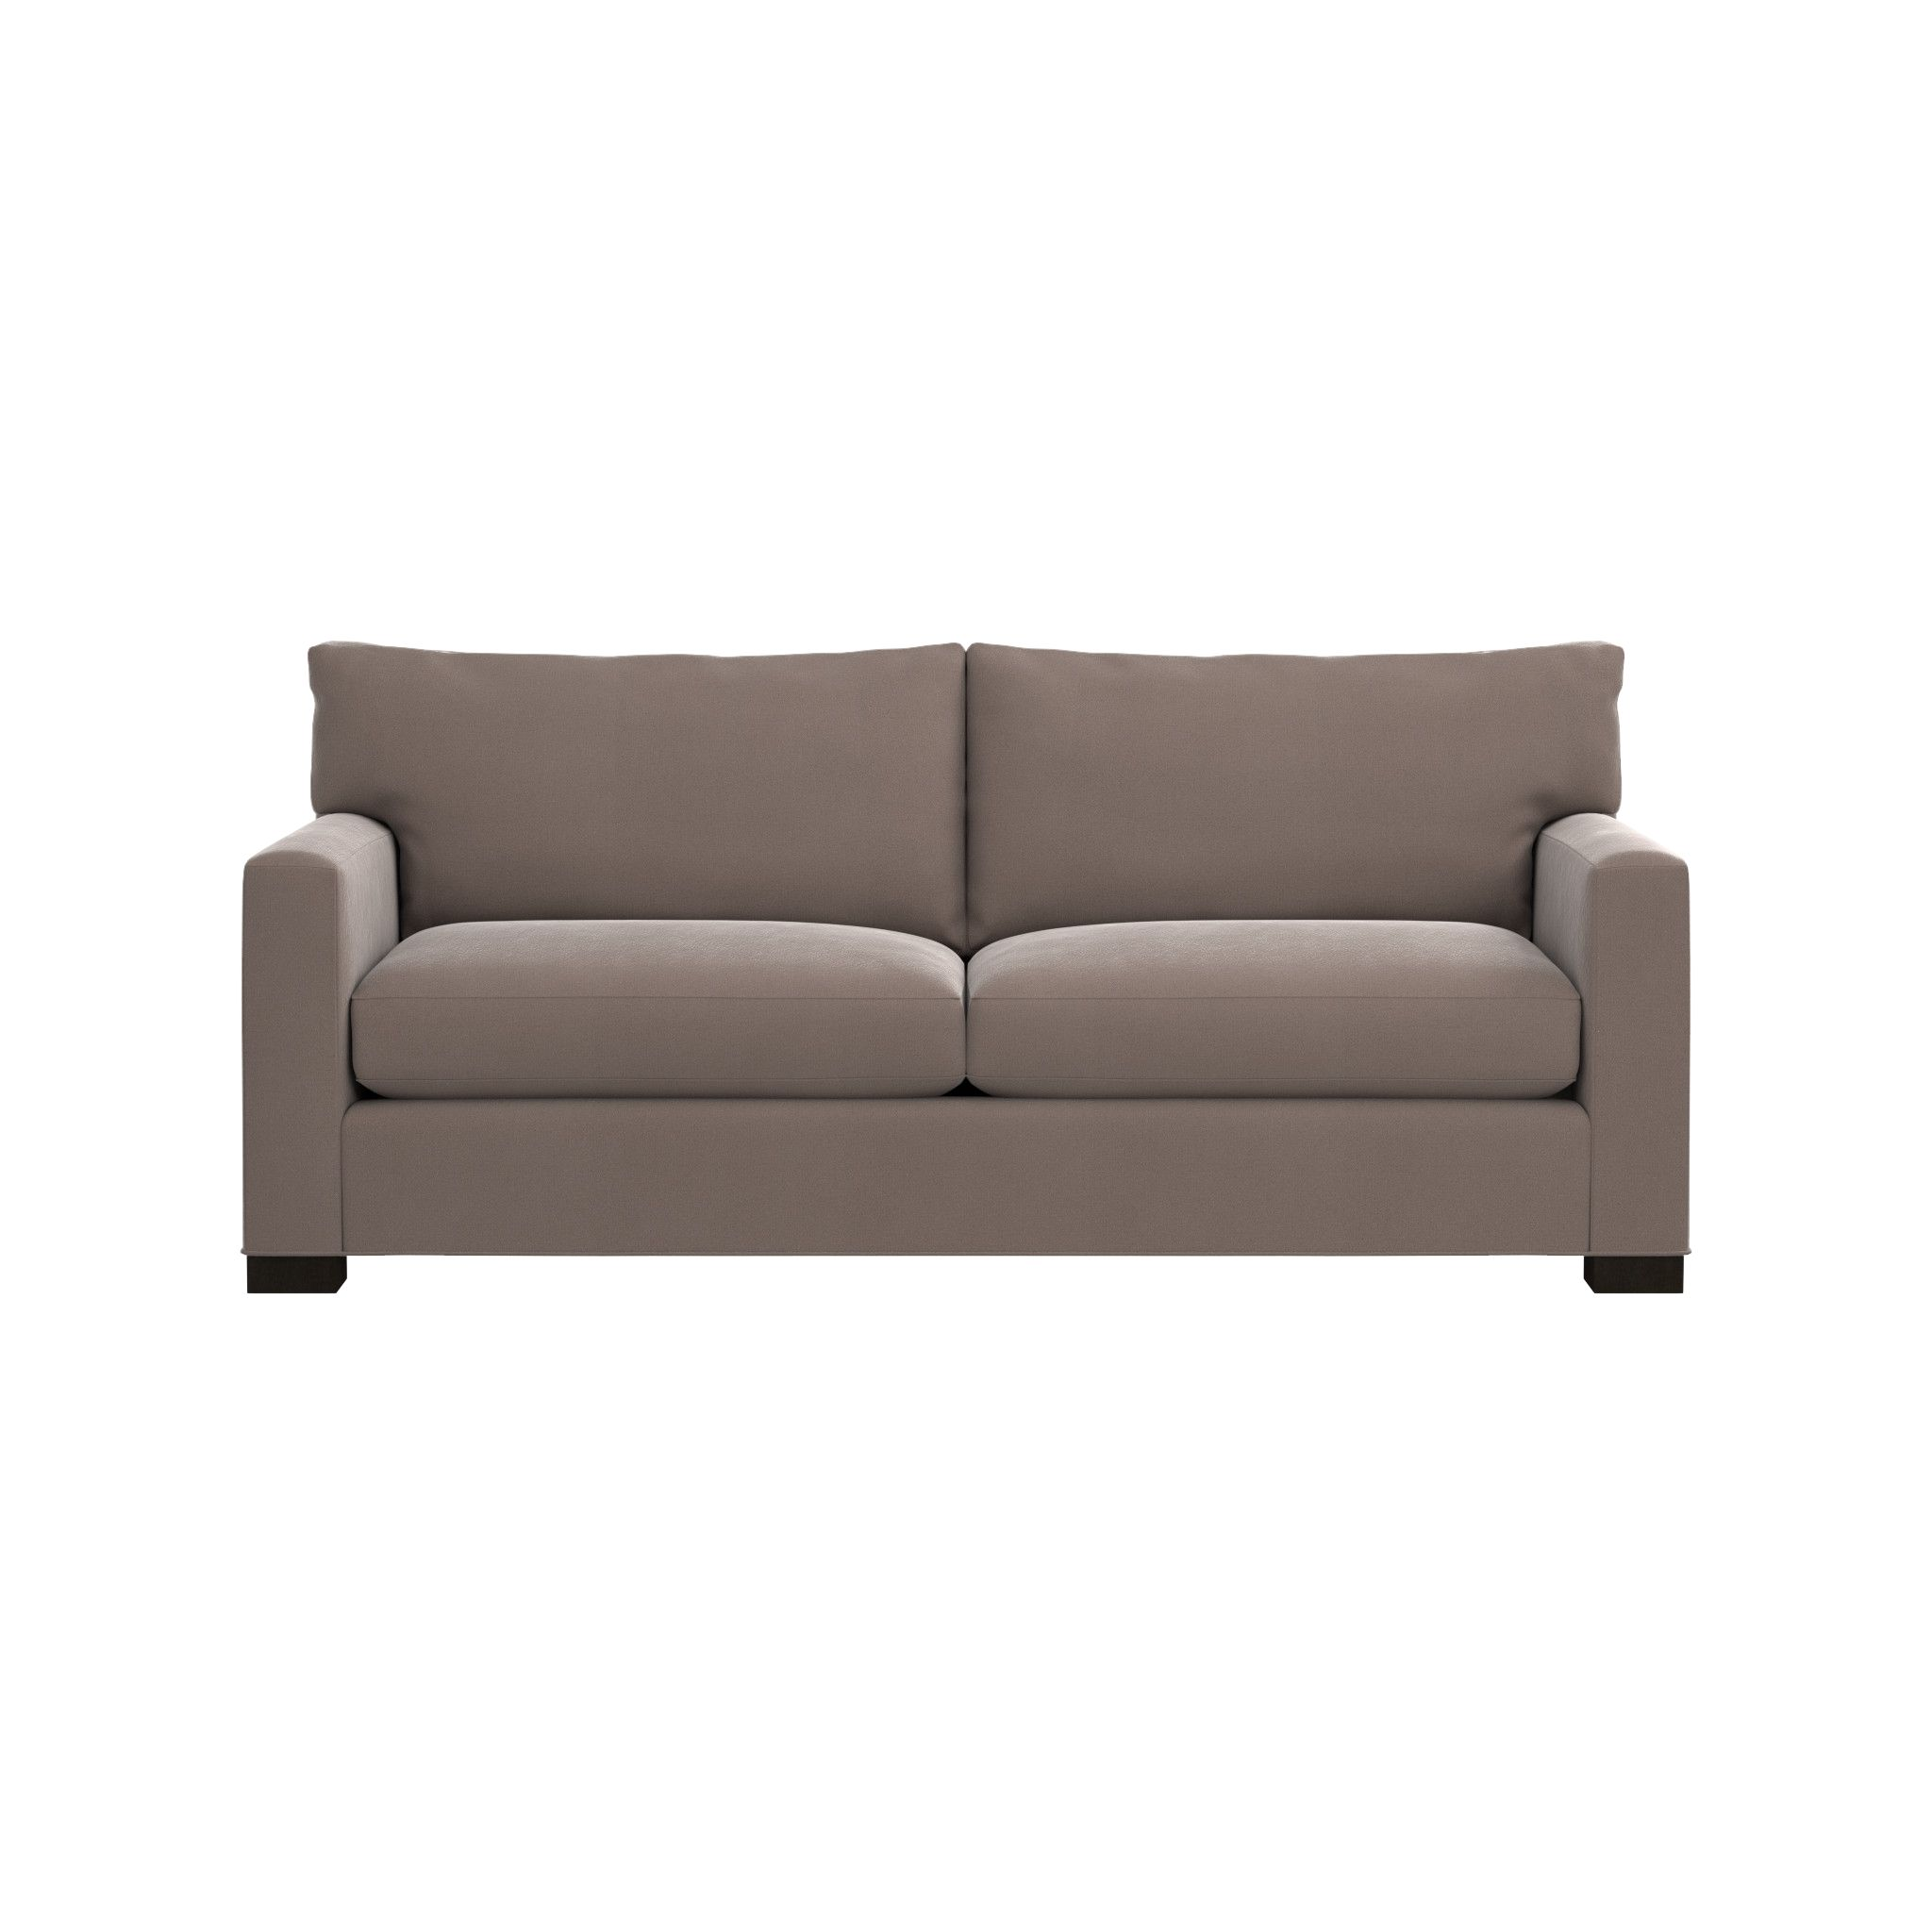 Crate and Barrel Couch | Crate and Barrel Discontinued Furniture | Crate and Barrel Sofas Reviews